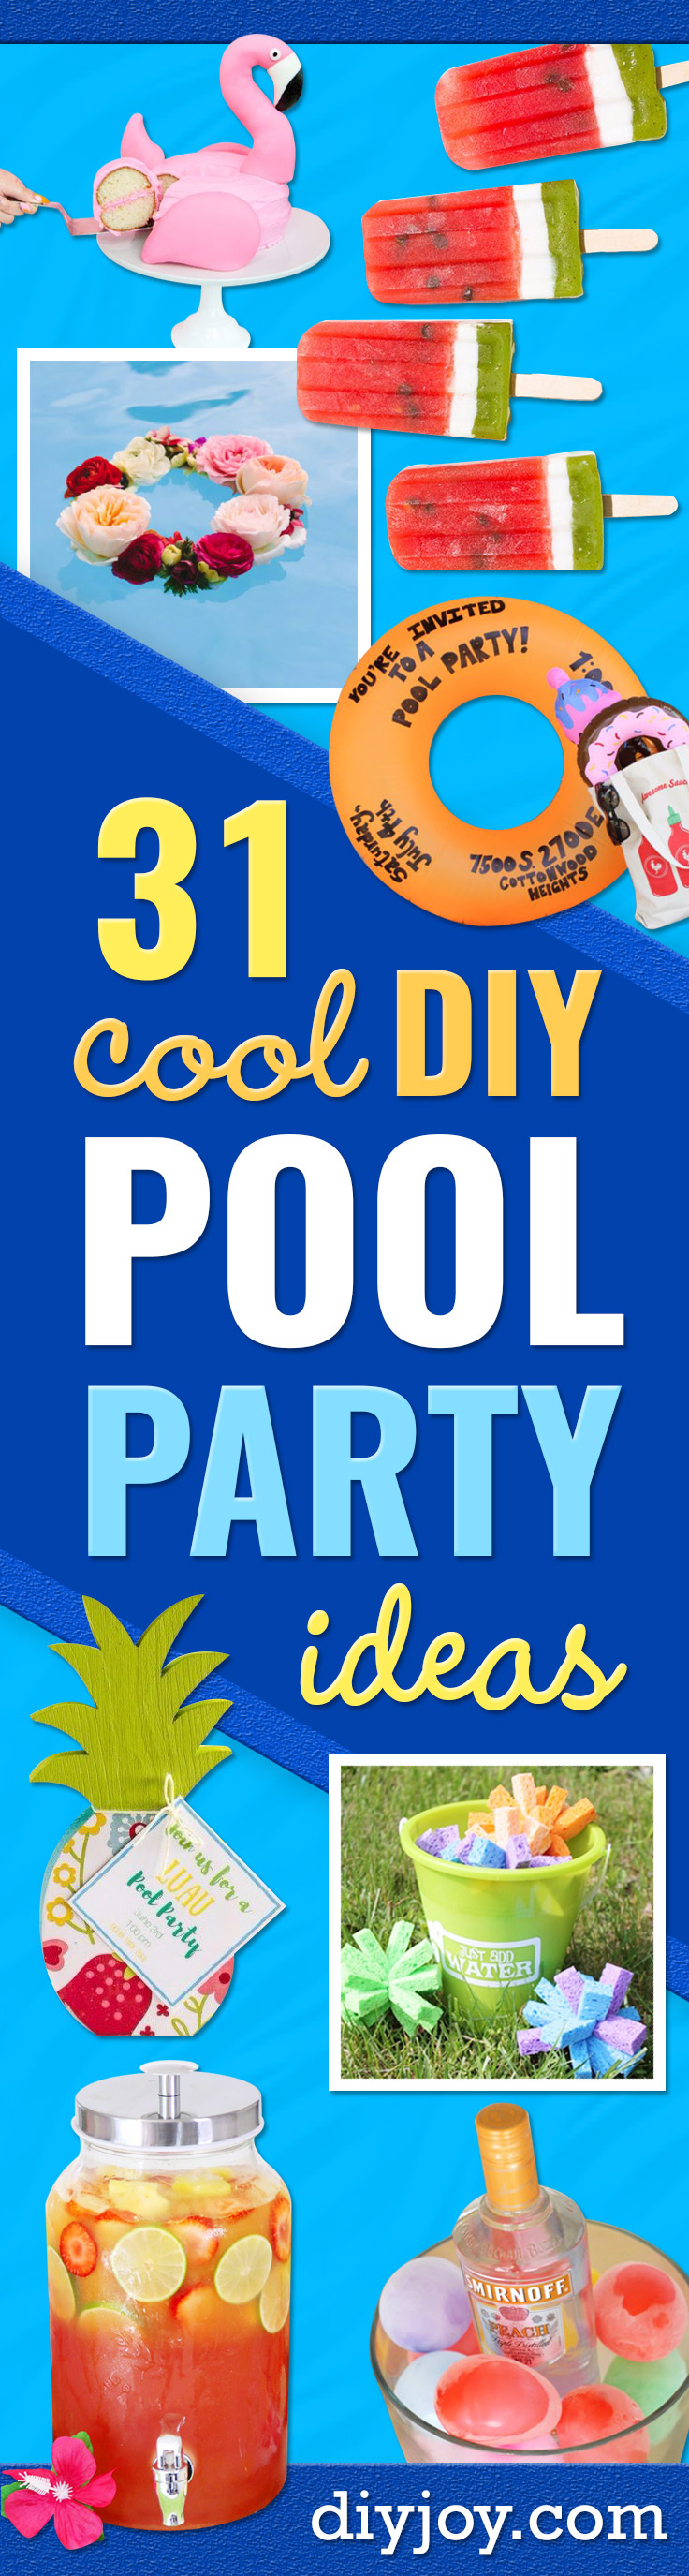 DIY Pool Party Ideas - Easy Decor Ideas for Pools - Best Pool Floats, Coolers, Party Foods and Drinks - Entertaining on A Budget - Step by Step Tutorials and Instructions - Summer Games and Fun Backyard Parties http://diyjoy.com/diy-pool-party-ideas